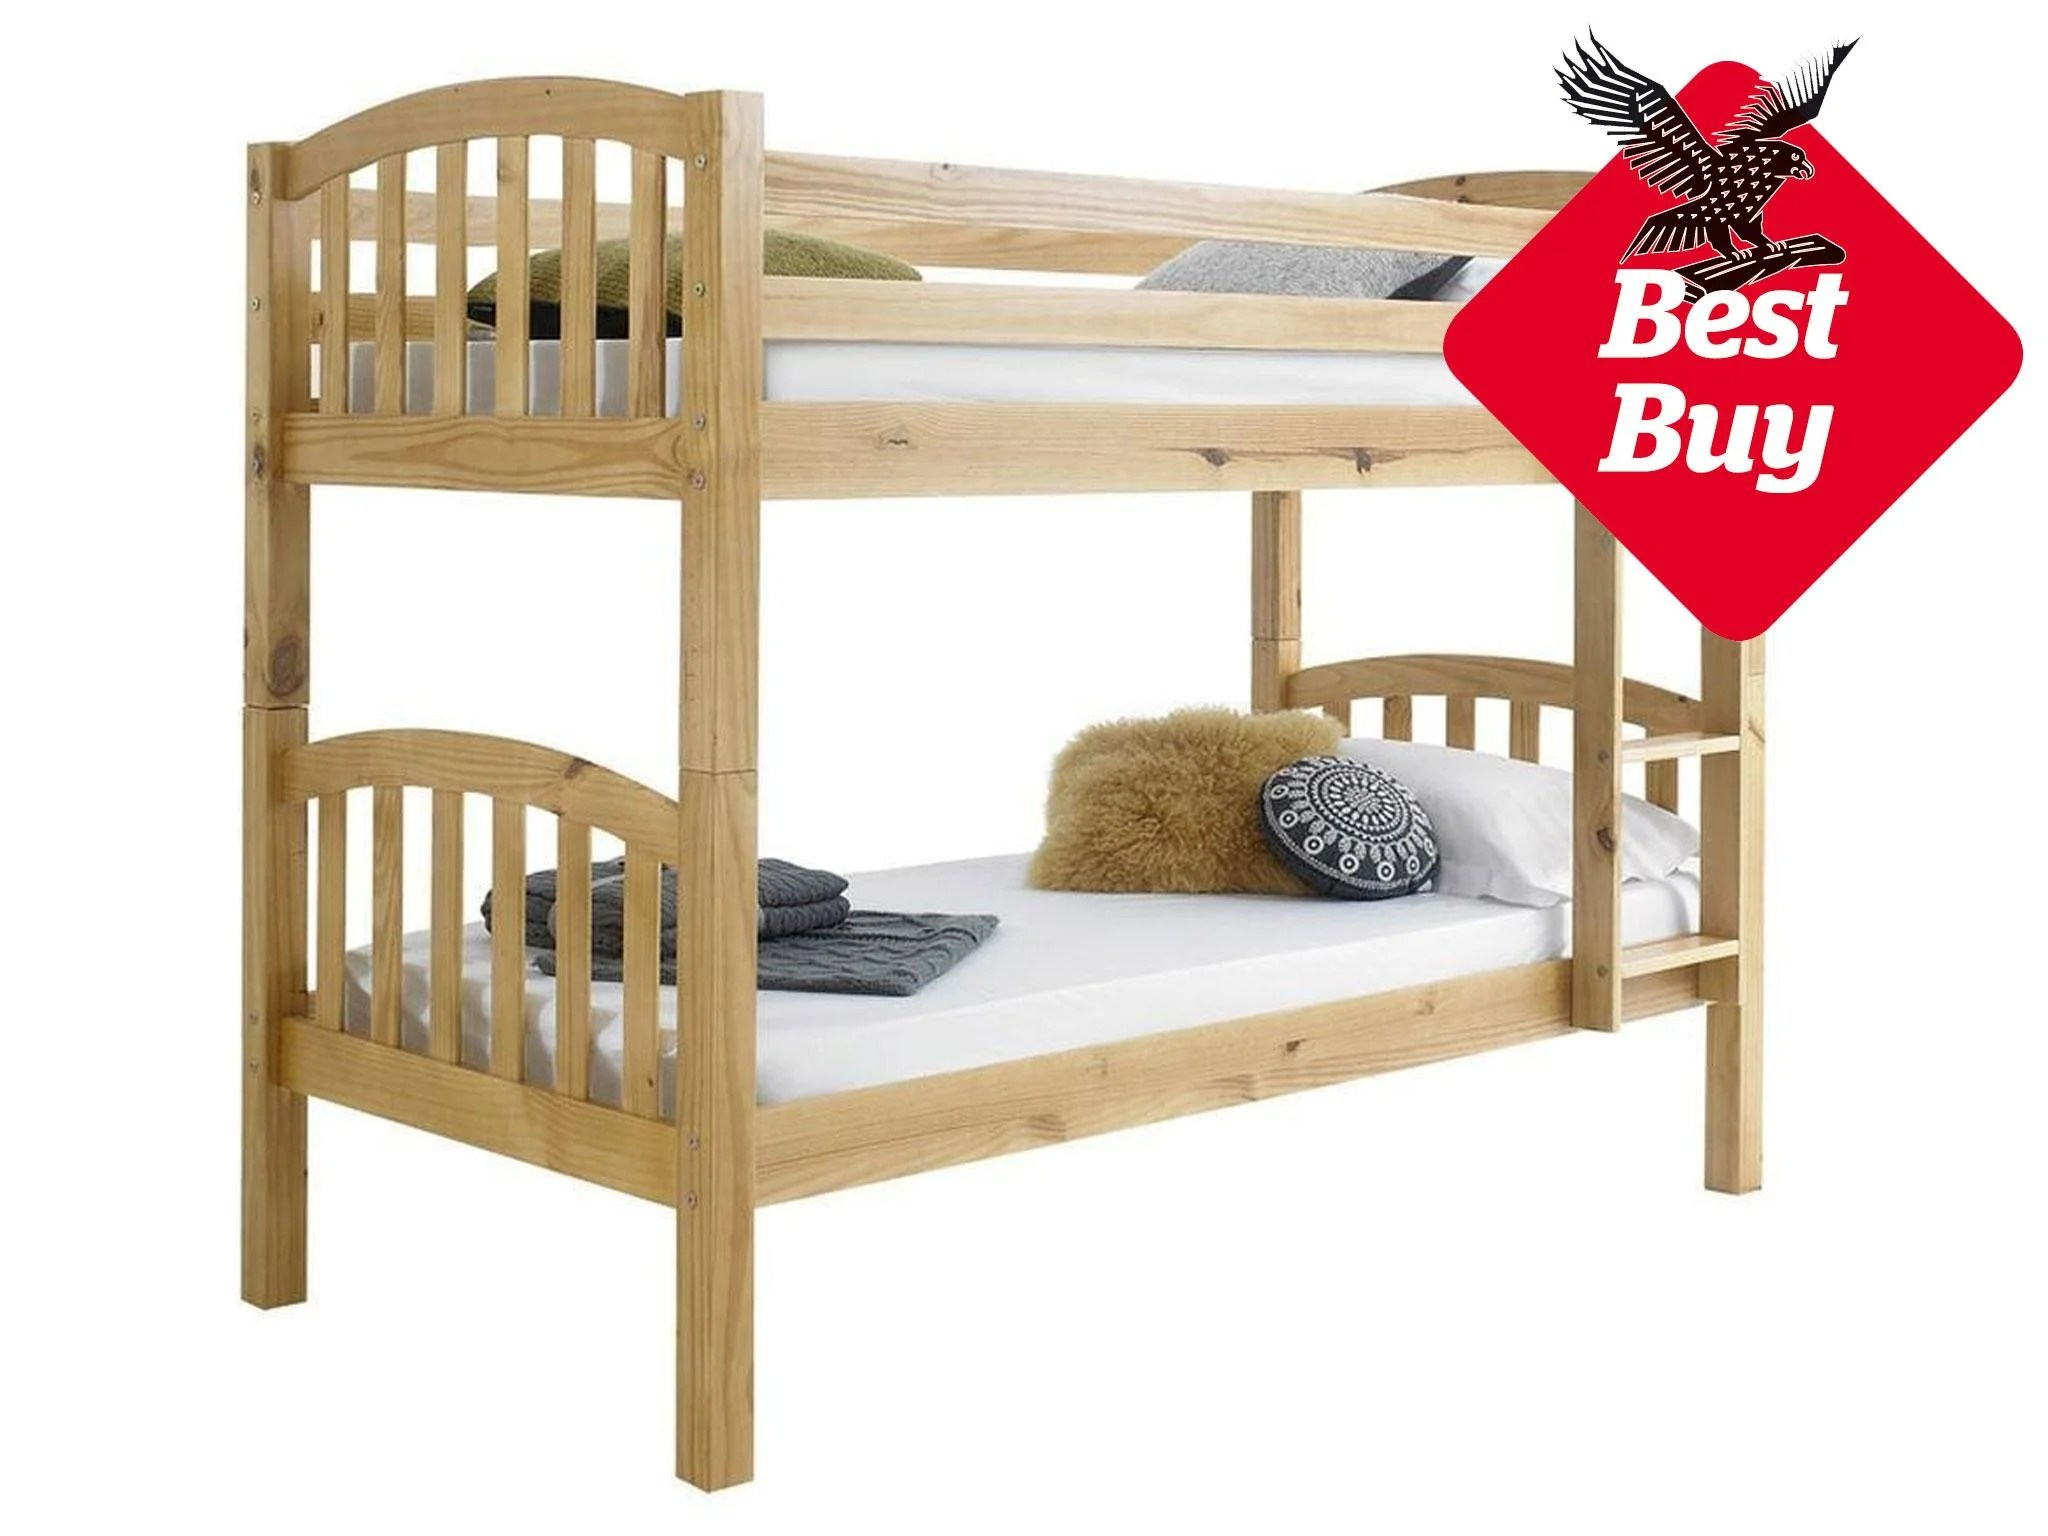 Double Bunks For Sale 10 Best Bunk Beds The Independent